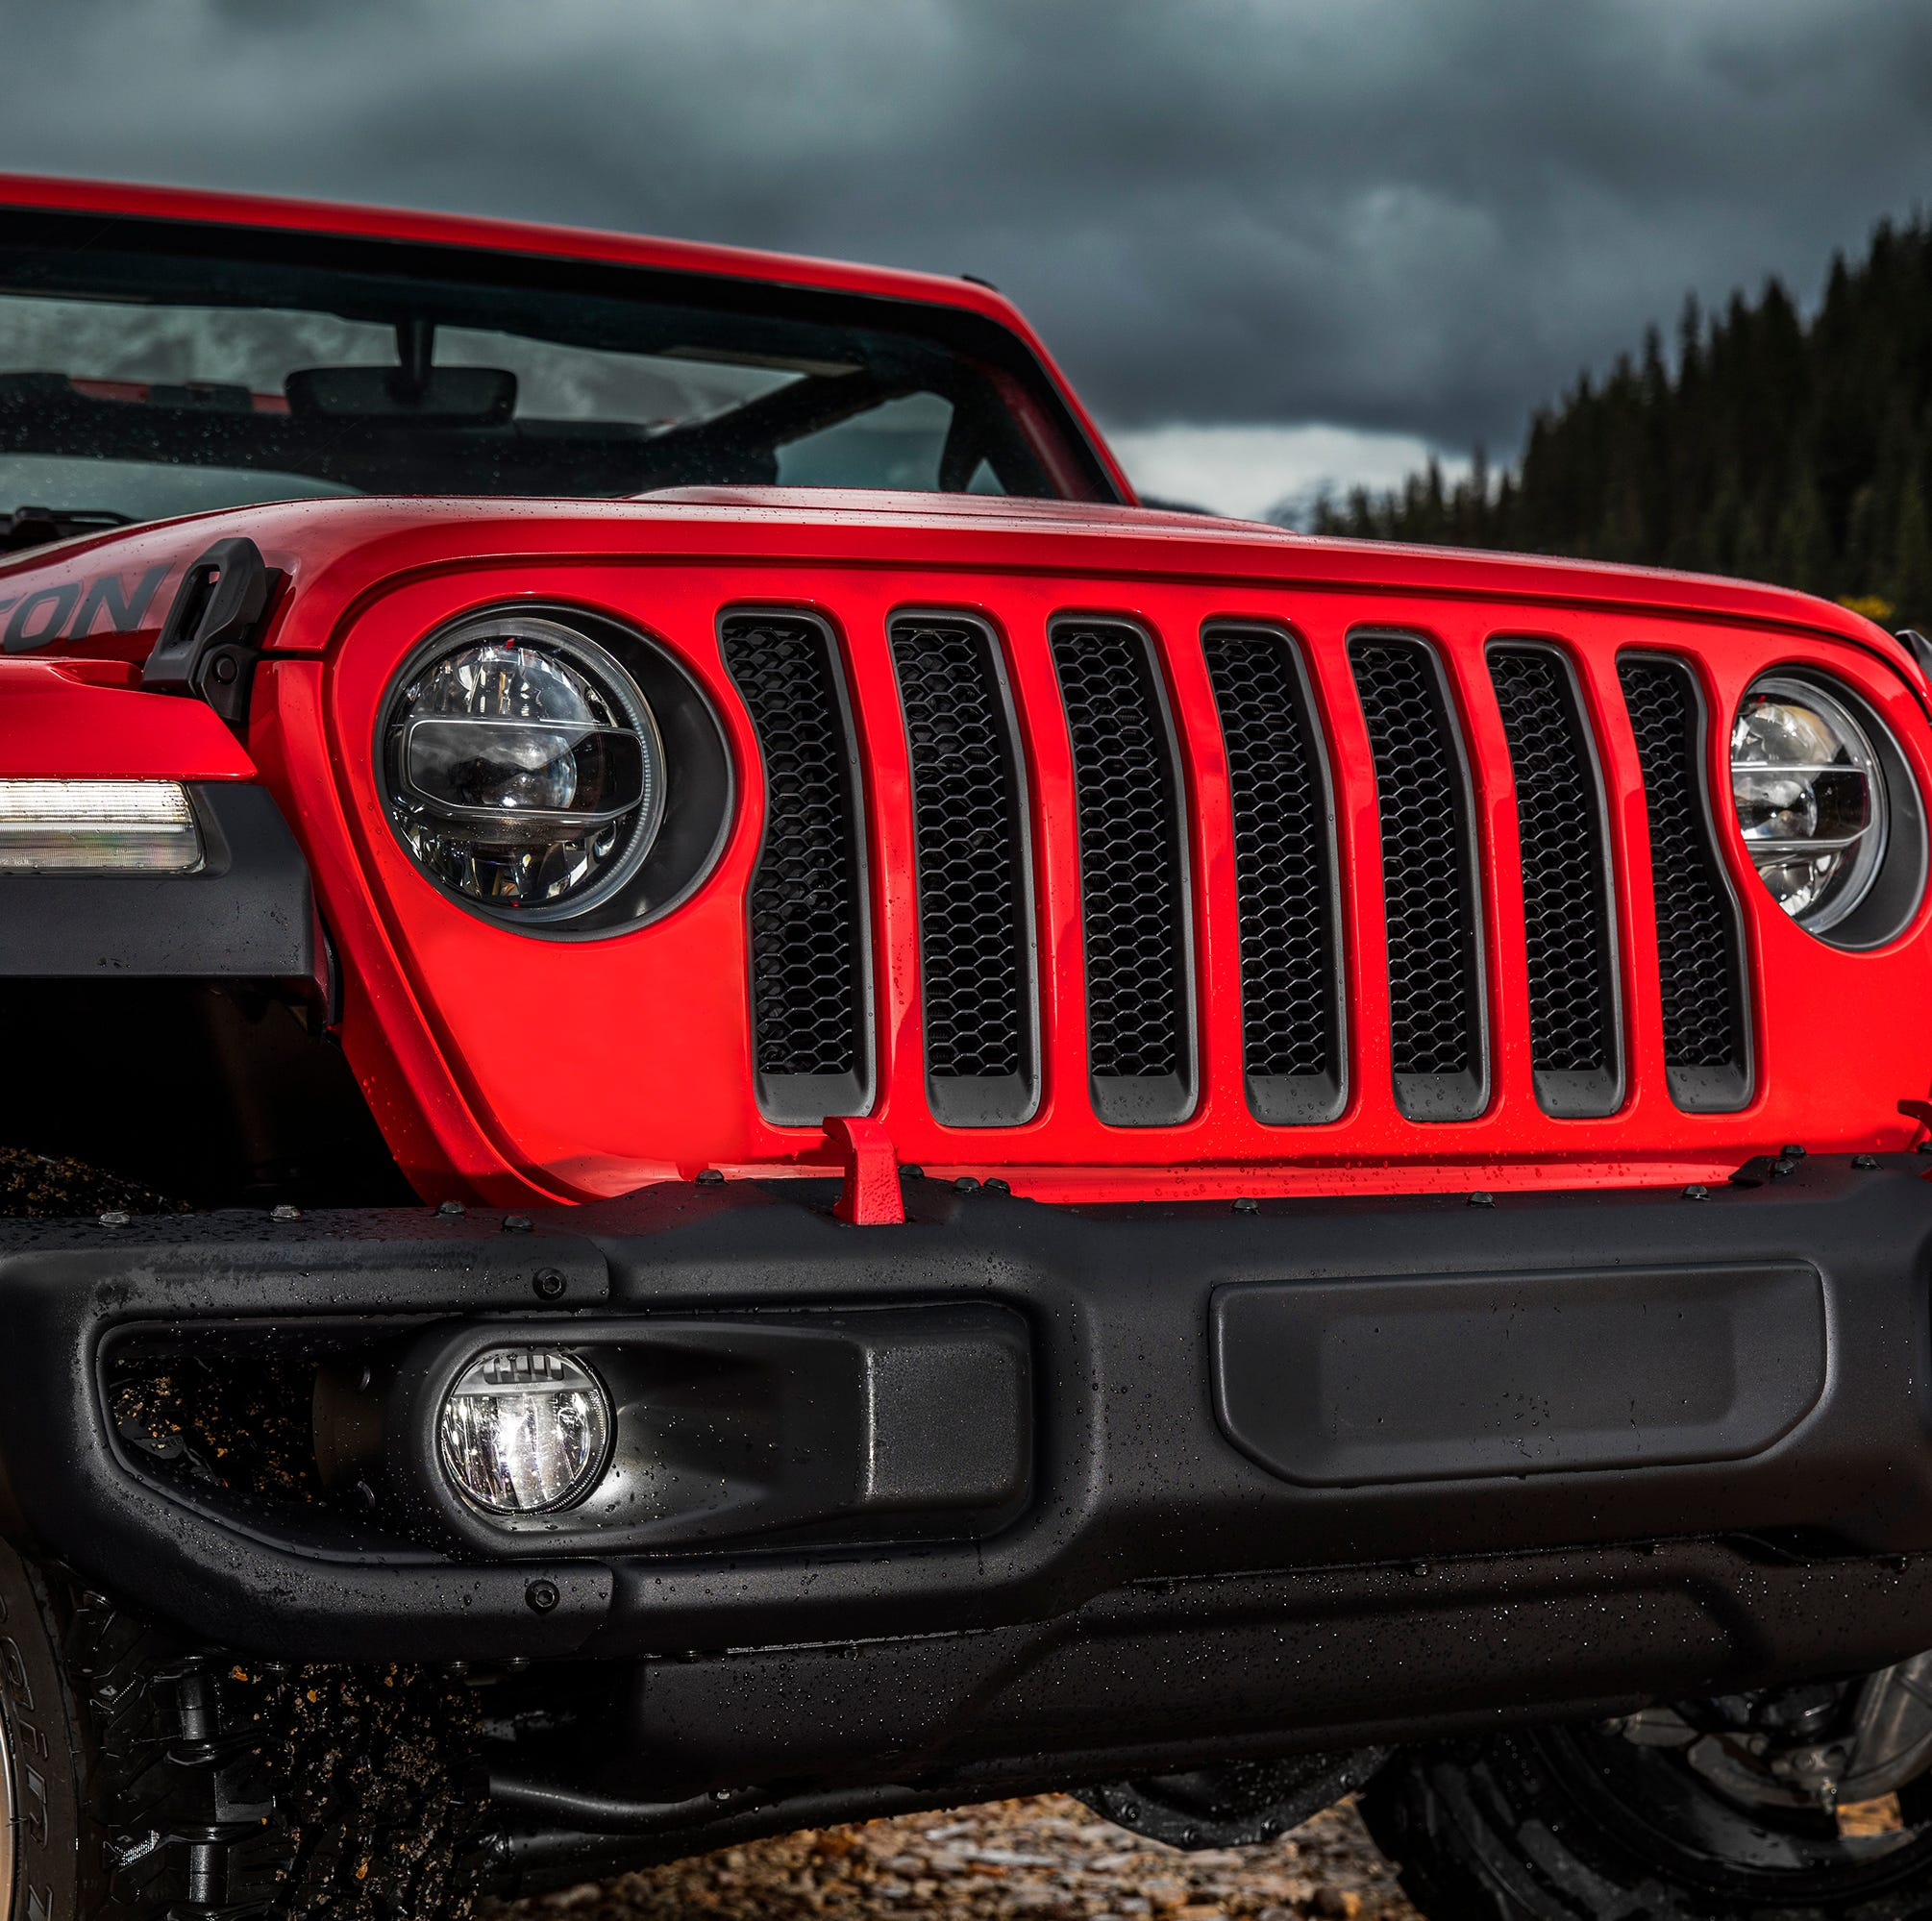 Jeep mega-brand transforms Fiat Chrysler's future